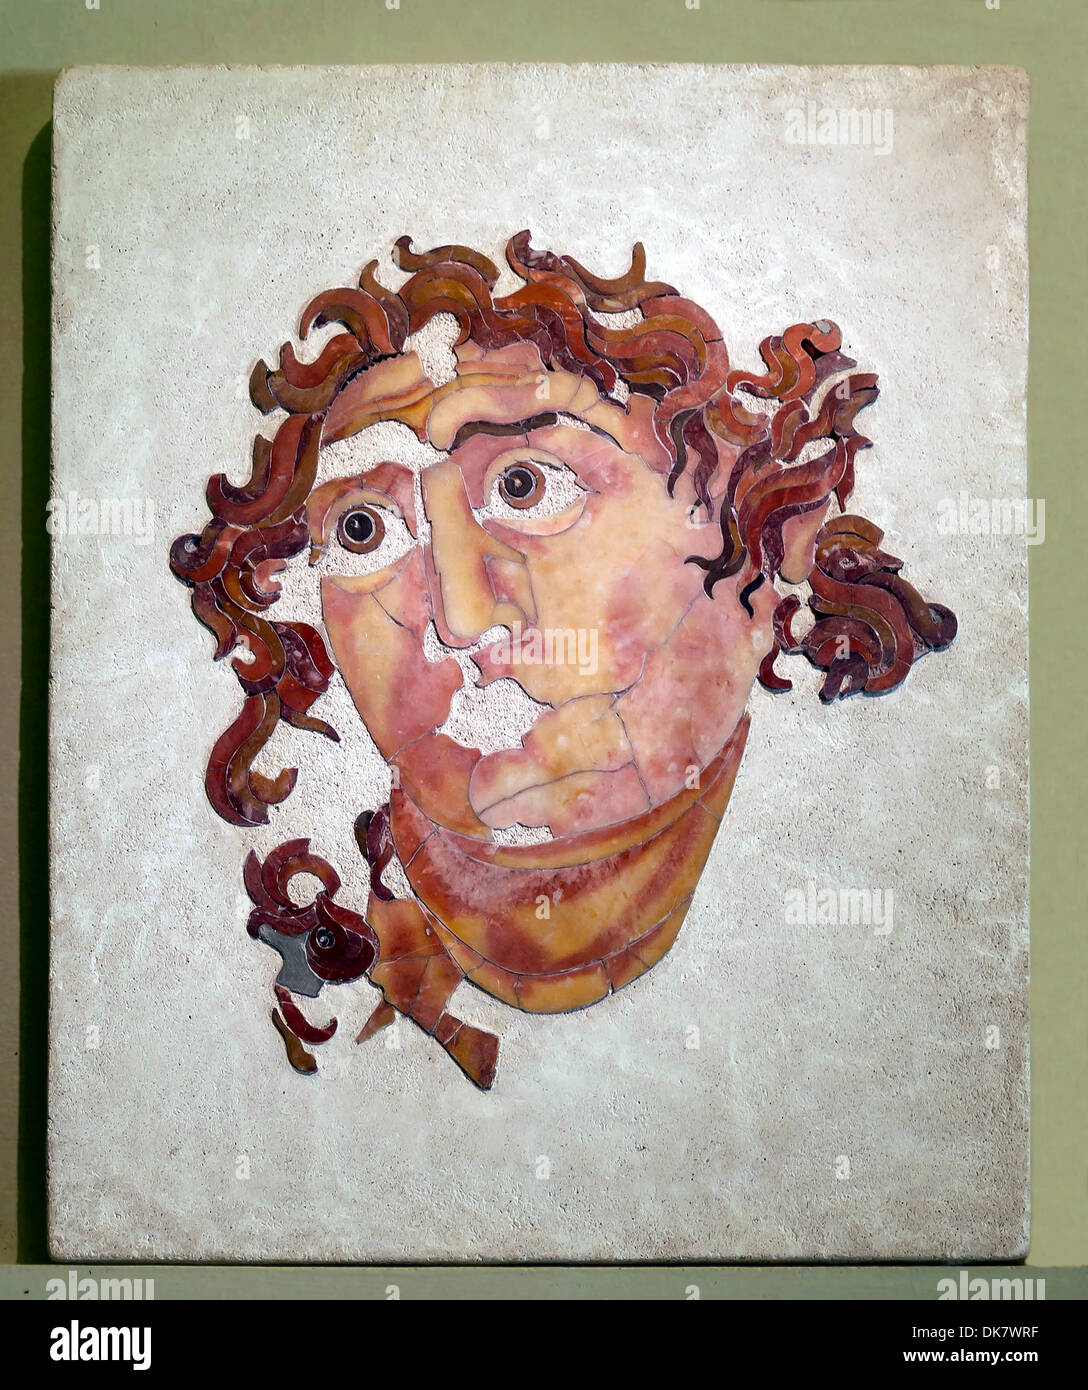 Head of Helios in Opus sectile, from the Mithraeum of Santa Prisca on the Aventine. Polychrome marble inlays. First Thirty years - Stock Image